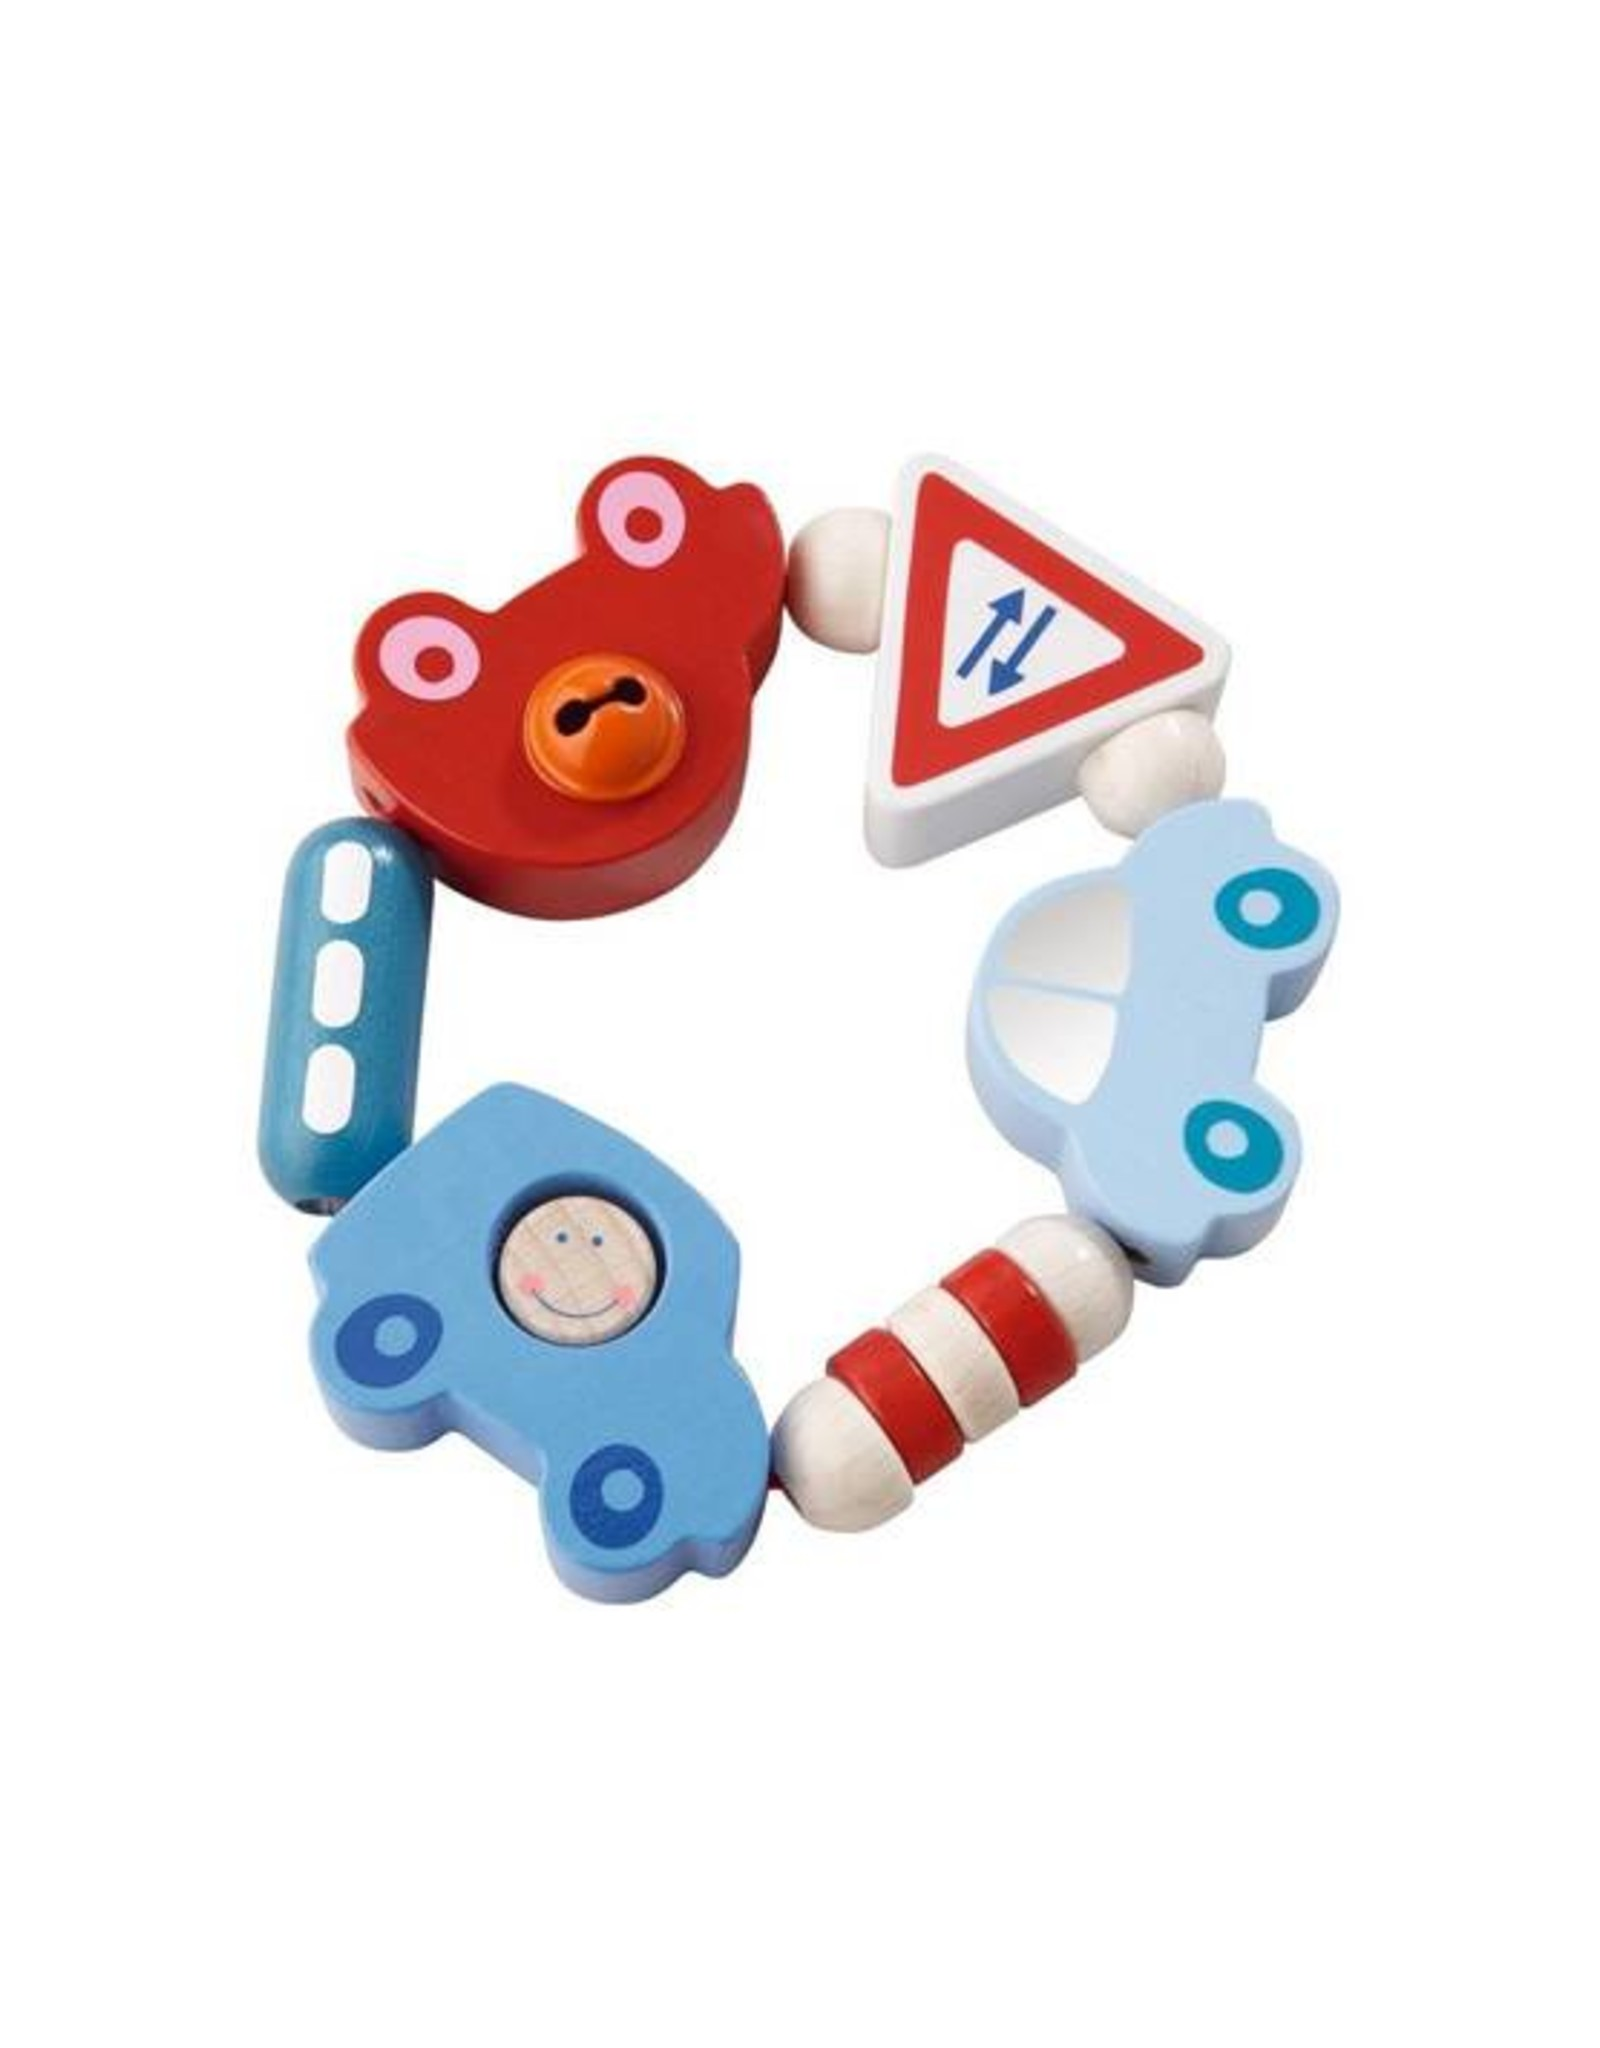 Haba toot toot clutching toy